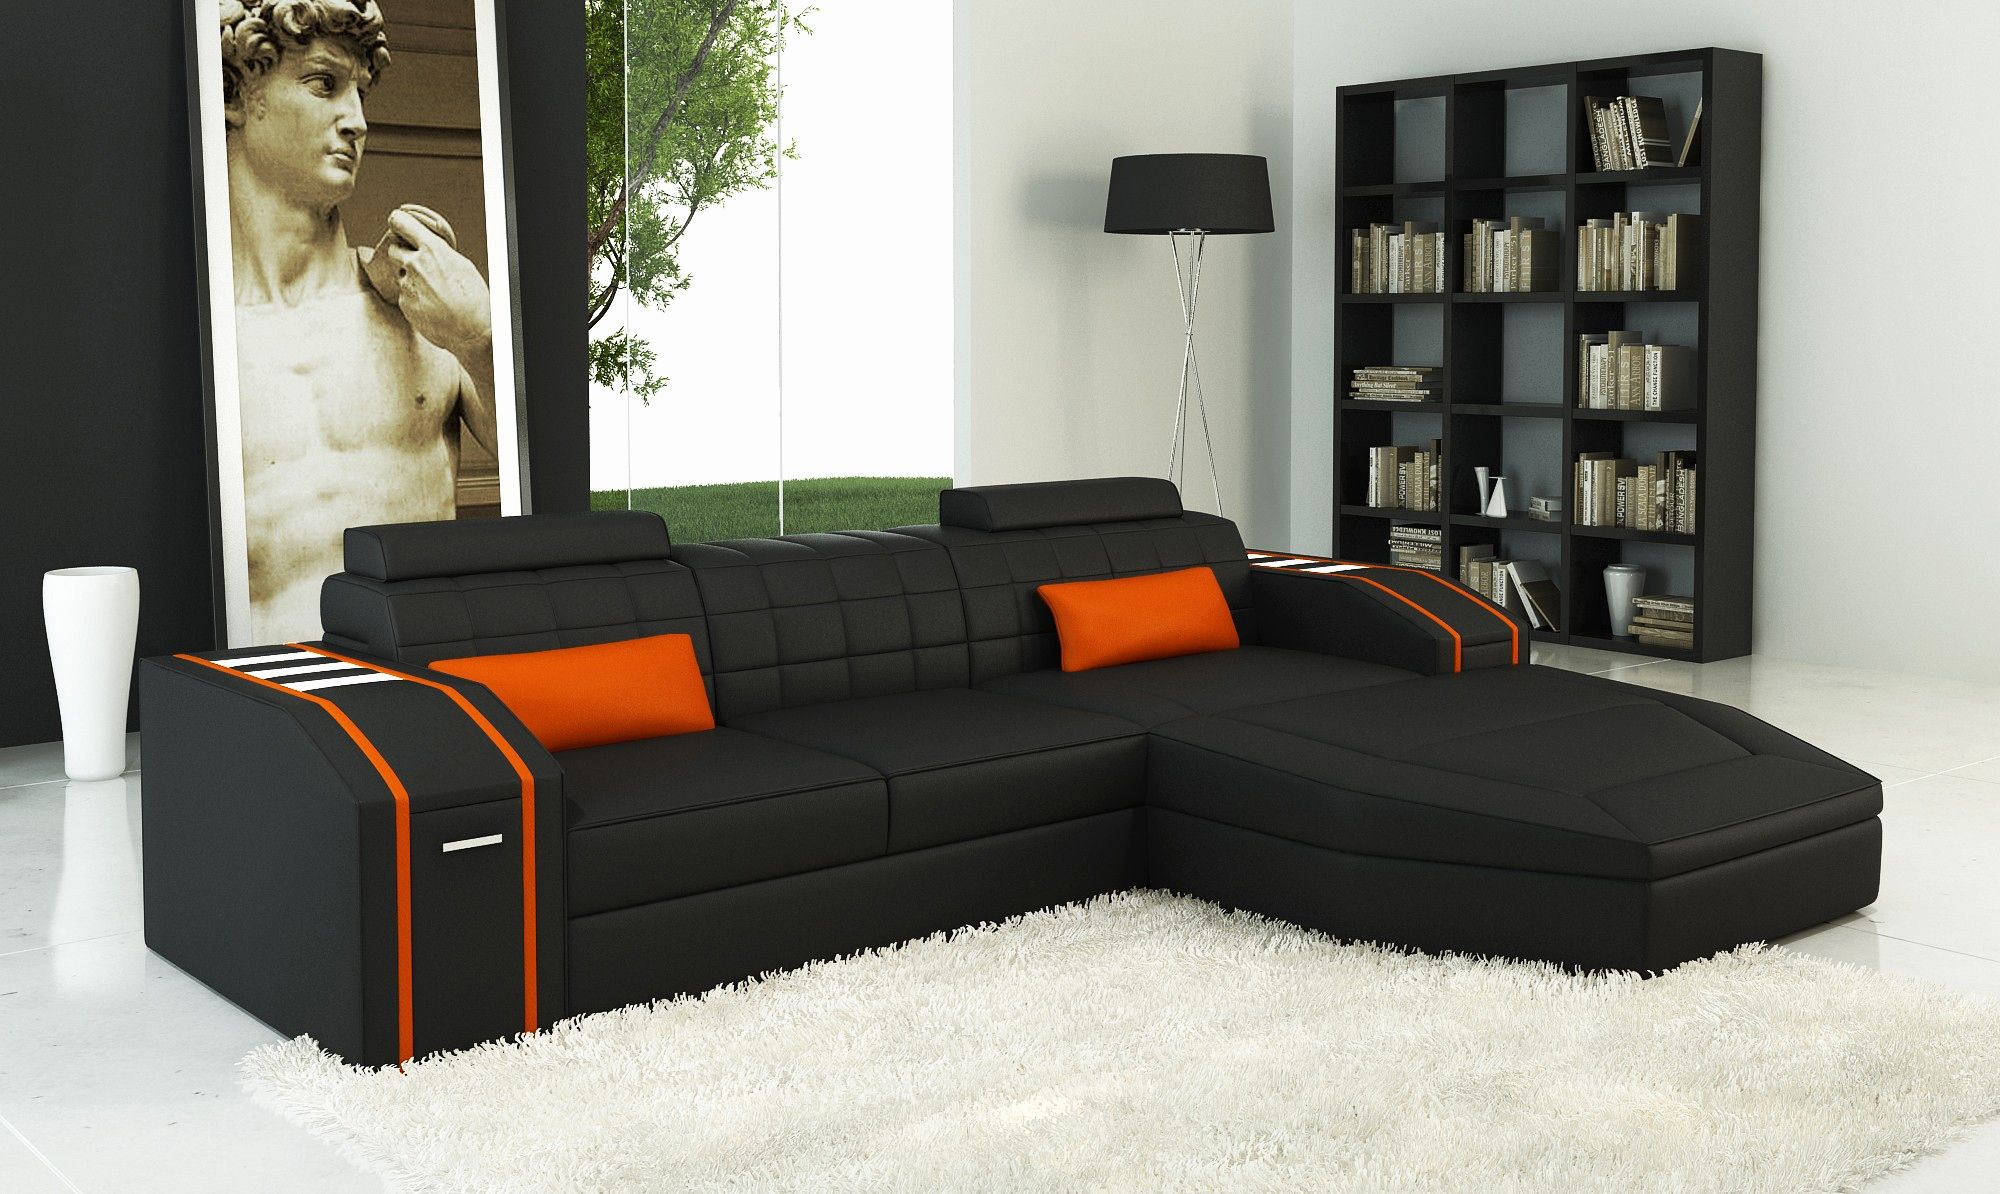 Luxury Affordable Sofa Sets Art Affordable Sofa Sets Beautiful